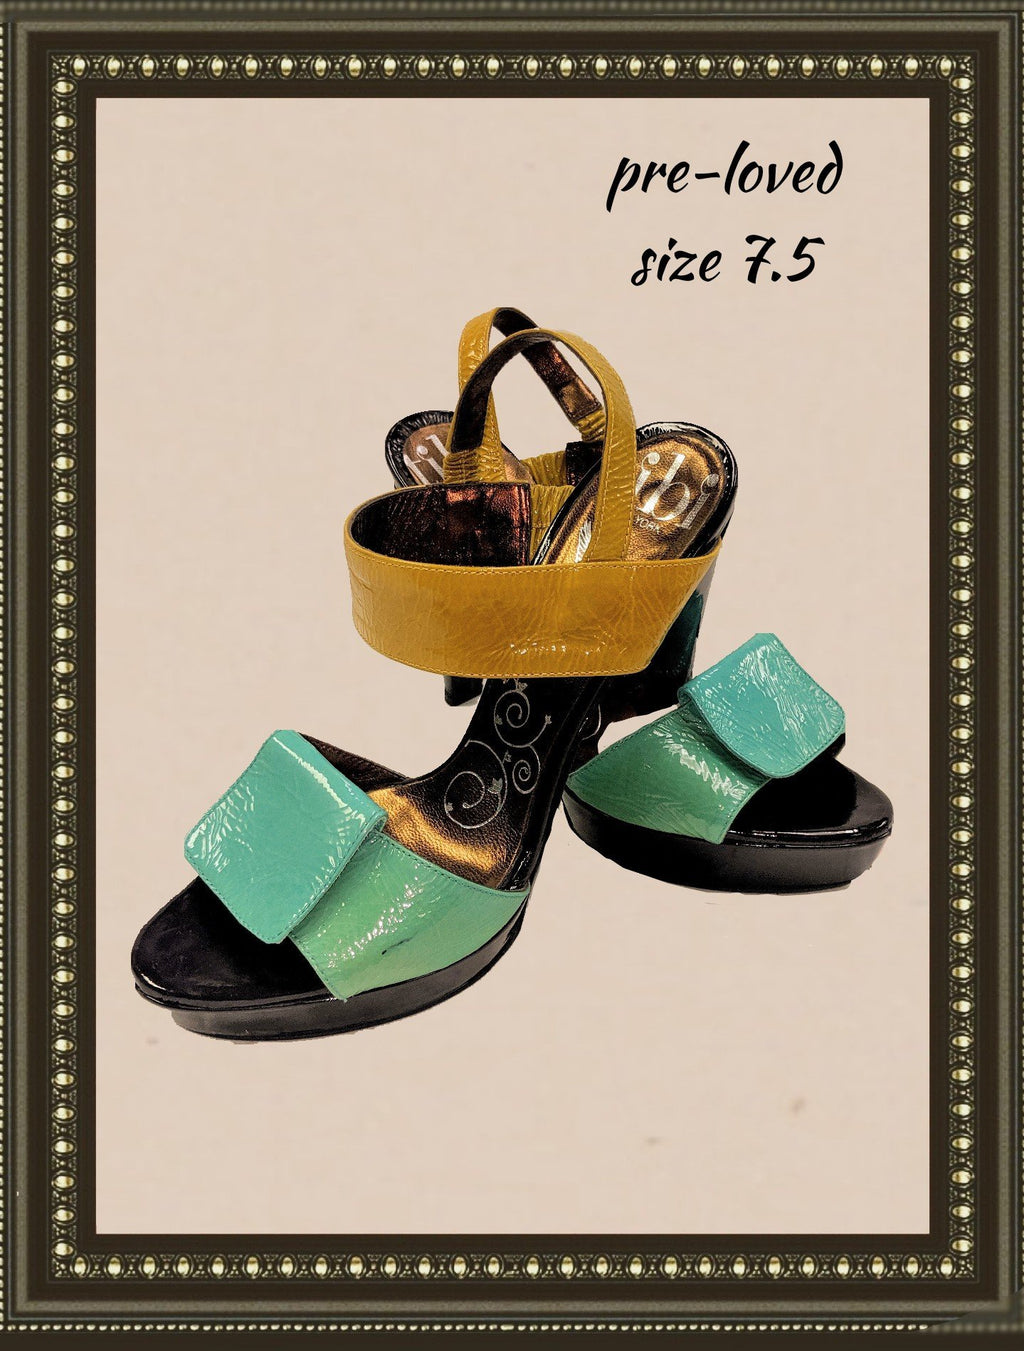 Tibi of New York - made in Italy - so cute and comfy- 7.5 (b).